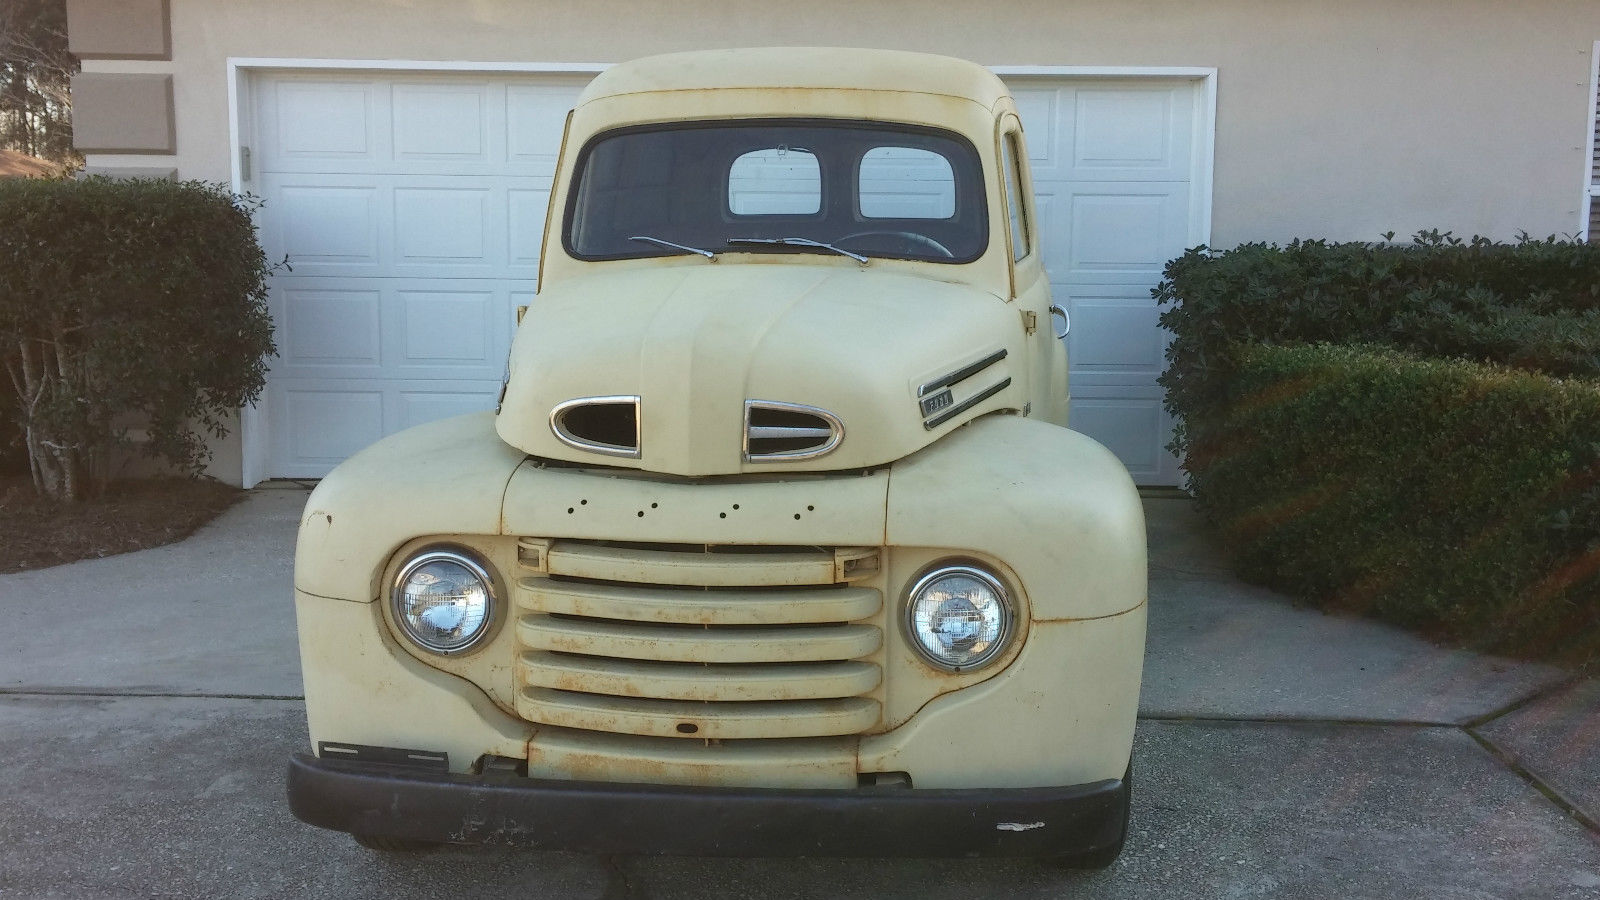 1949 Ford Panel Delivery Van For Sale In Milton Florida United States Dodge Other Pickups F 1